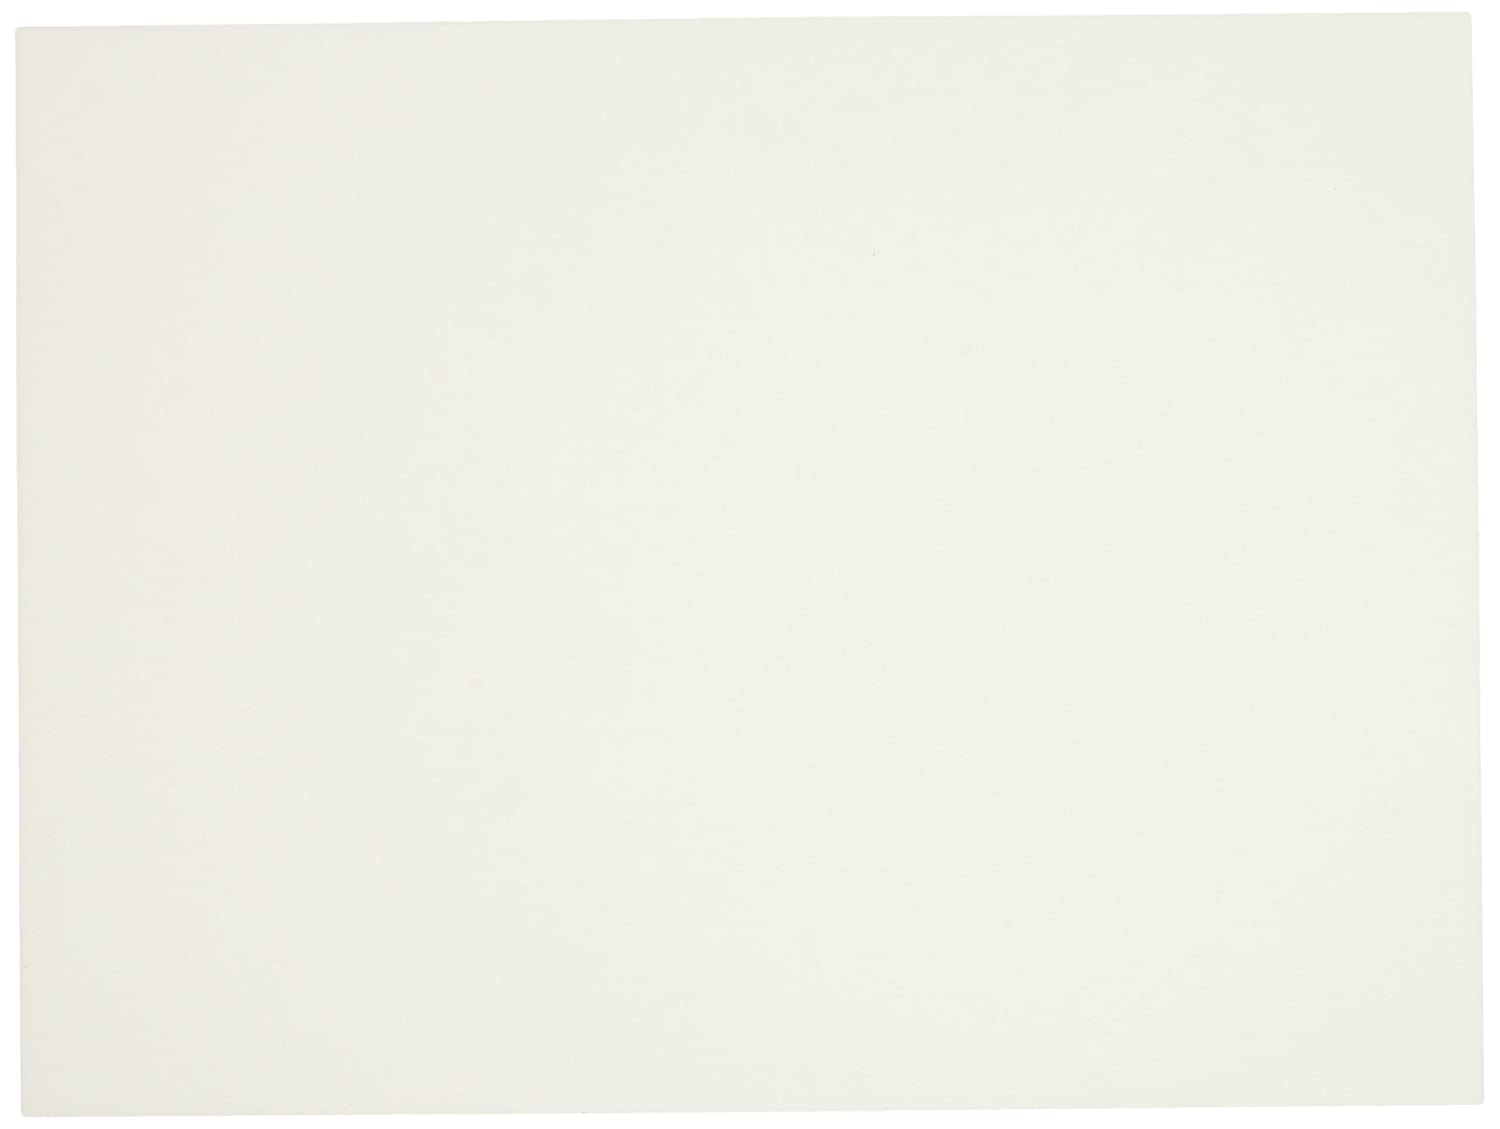 Sax Watercolor Paper - 90 lb - 9 x 12 inches - Pack of 500 - White School Specialty 408401